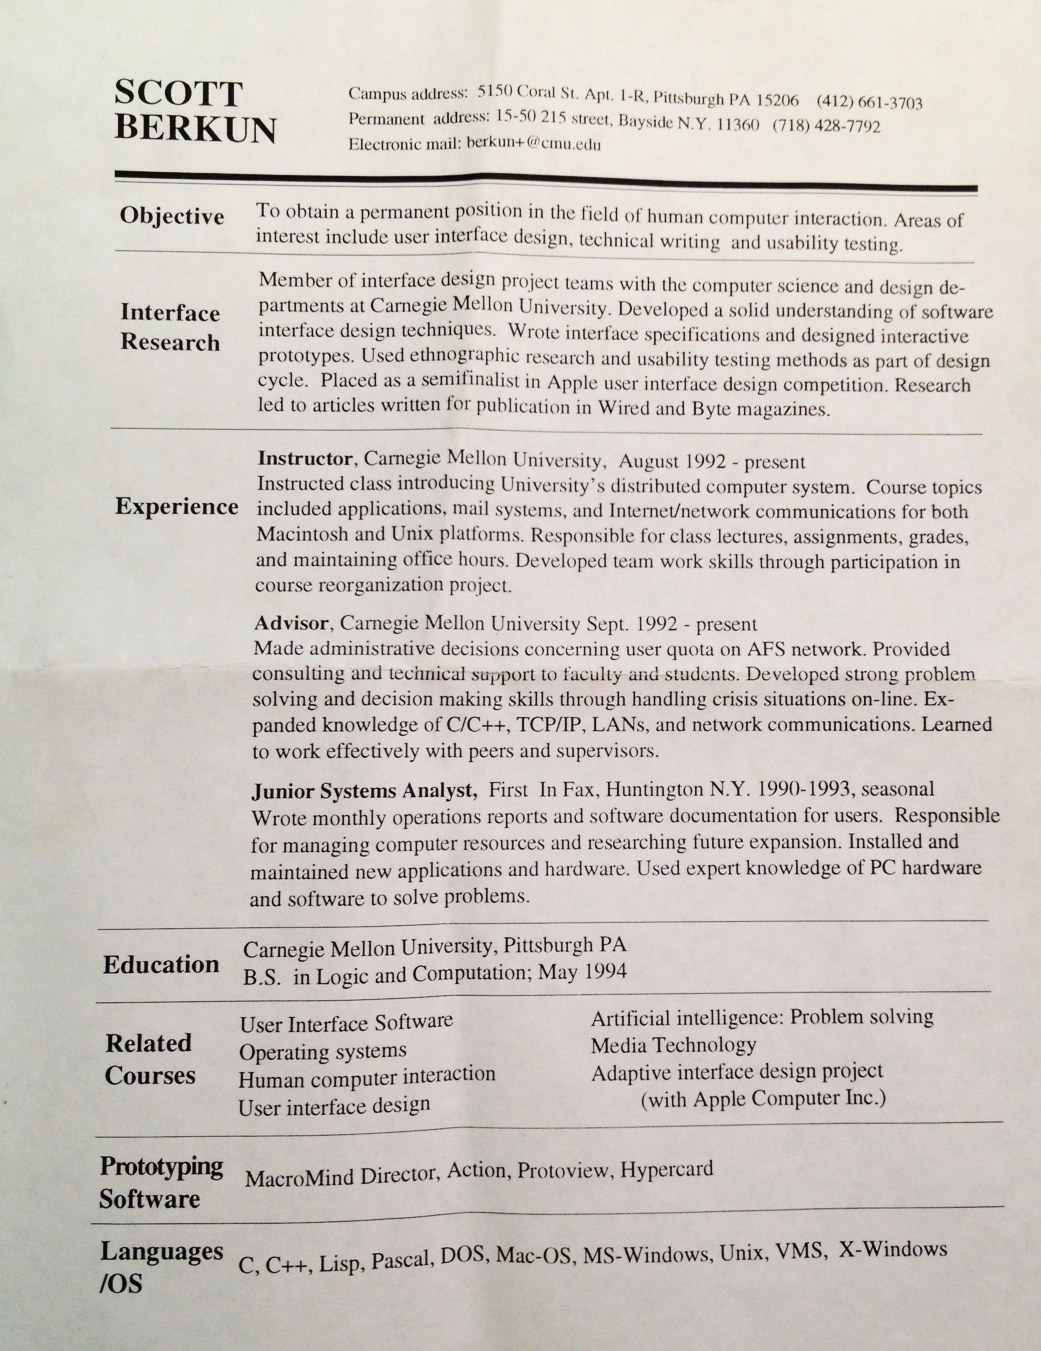 Would you hire me? Resume from 1994 | Scott Berkun